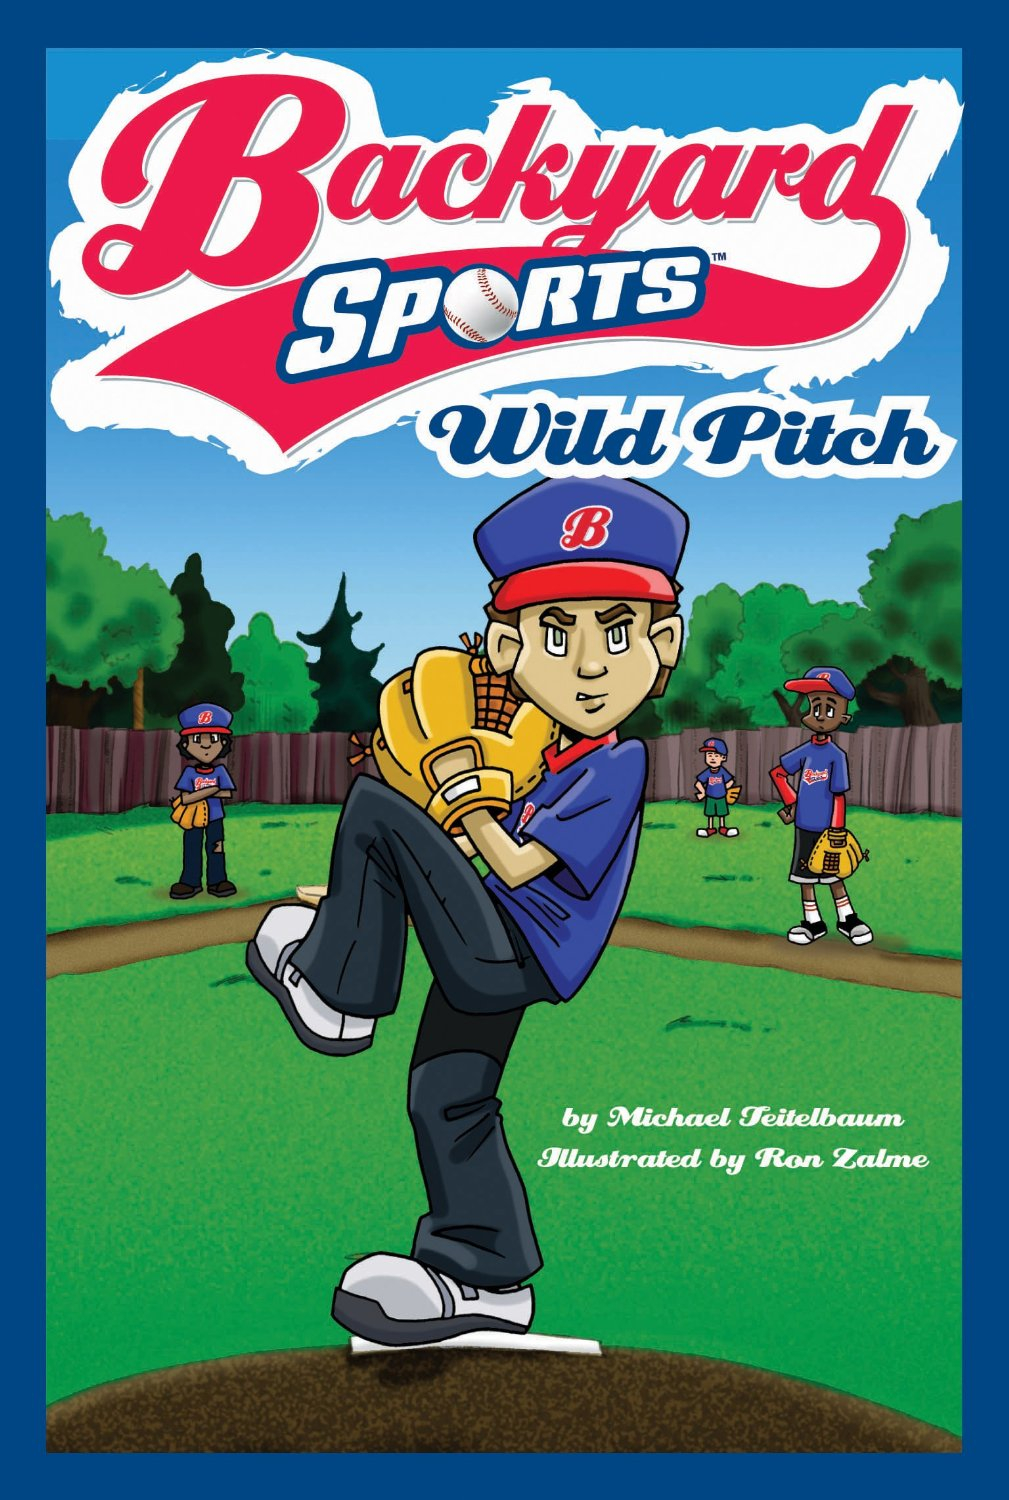 Modern Backyard Sports Book Series | Erik Haldi regarding Best of Backyard Sports Characters